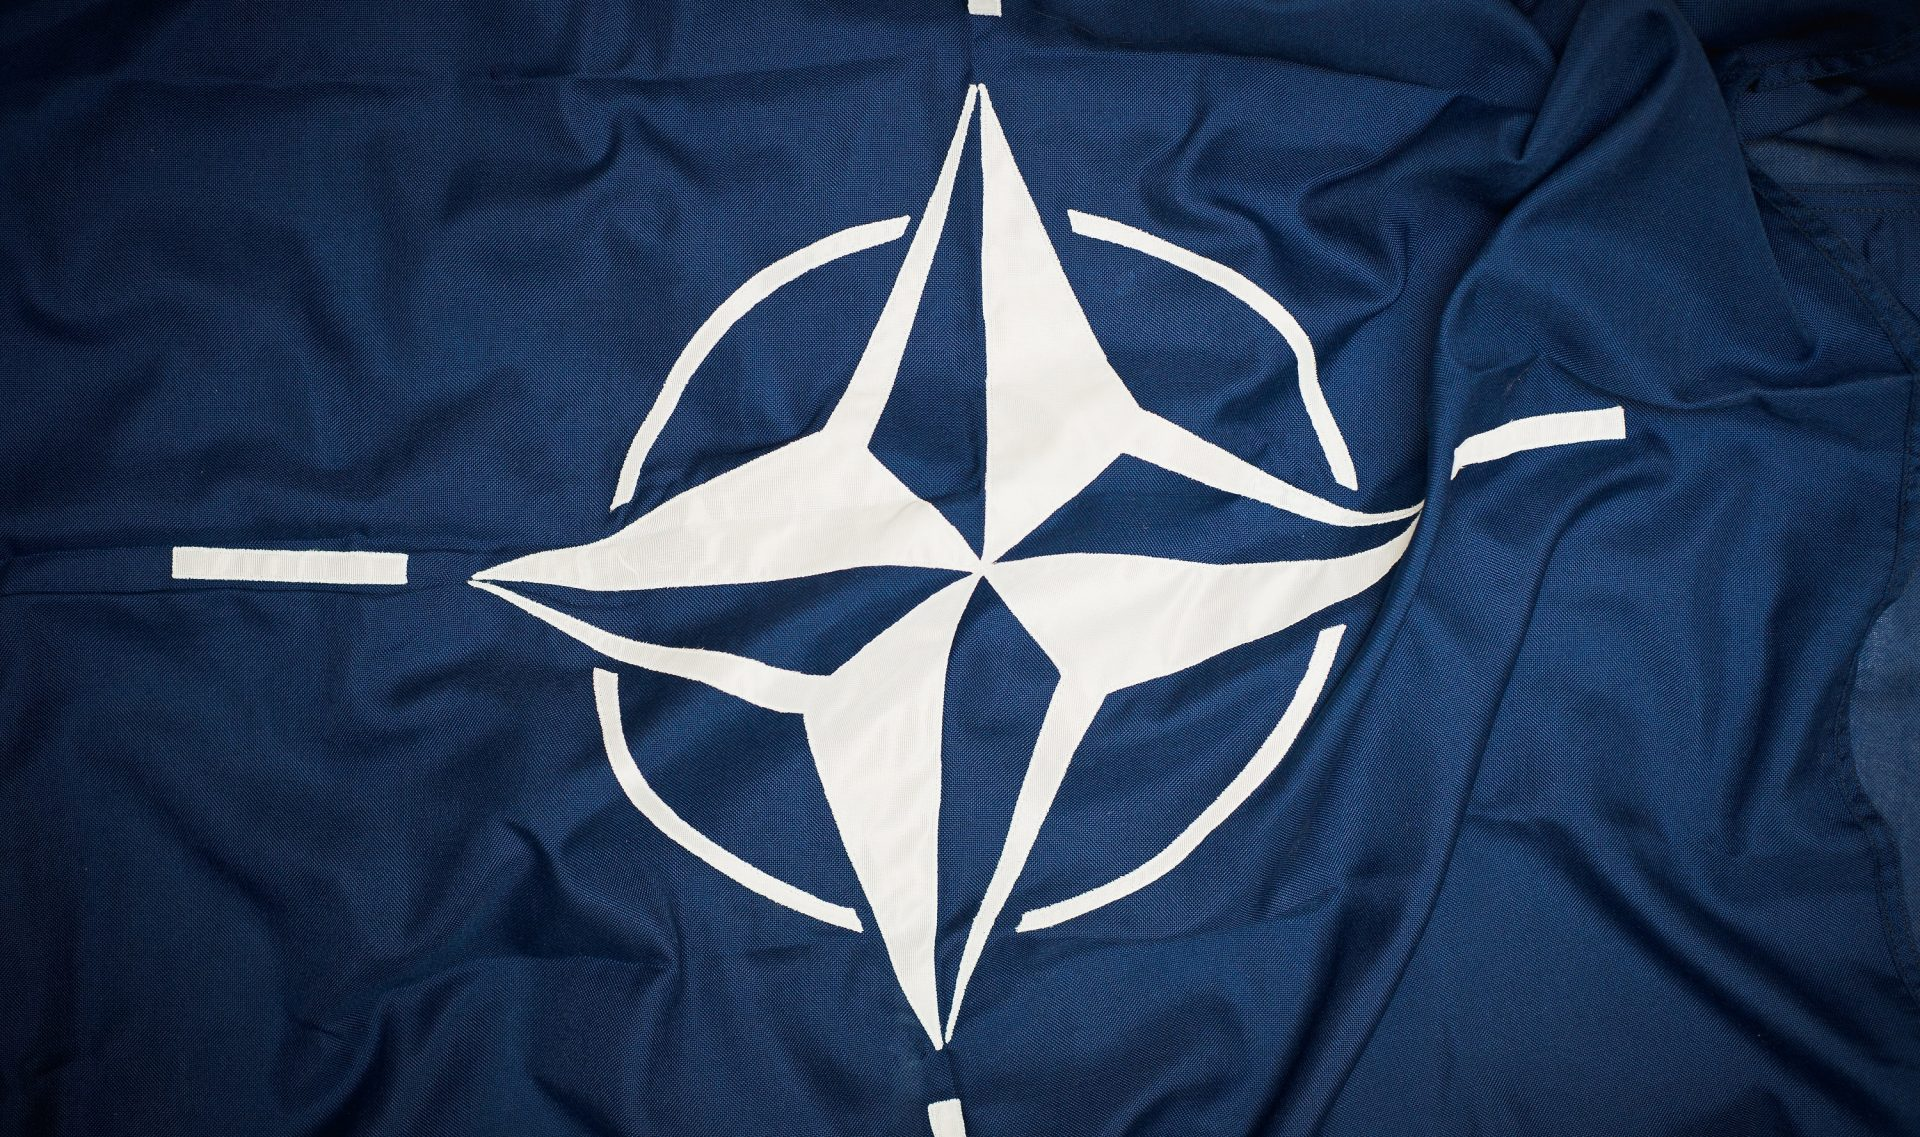 The flag of the North Atlantic Treaty Organization (NATO) consists of a dark blue field charged with a white compass rose emblem, with four white lines radiating from the four cardinal directions. Adopted three years after the creation of the organization, it has been the flag of NATO since October 14, 1953. The blue colour symbolizes the Atlantic Ocean, while the circle stands for unity.